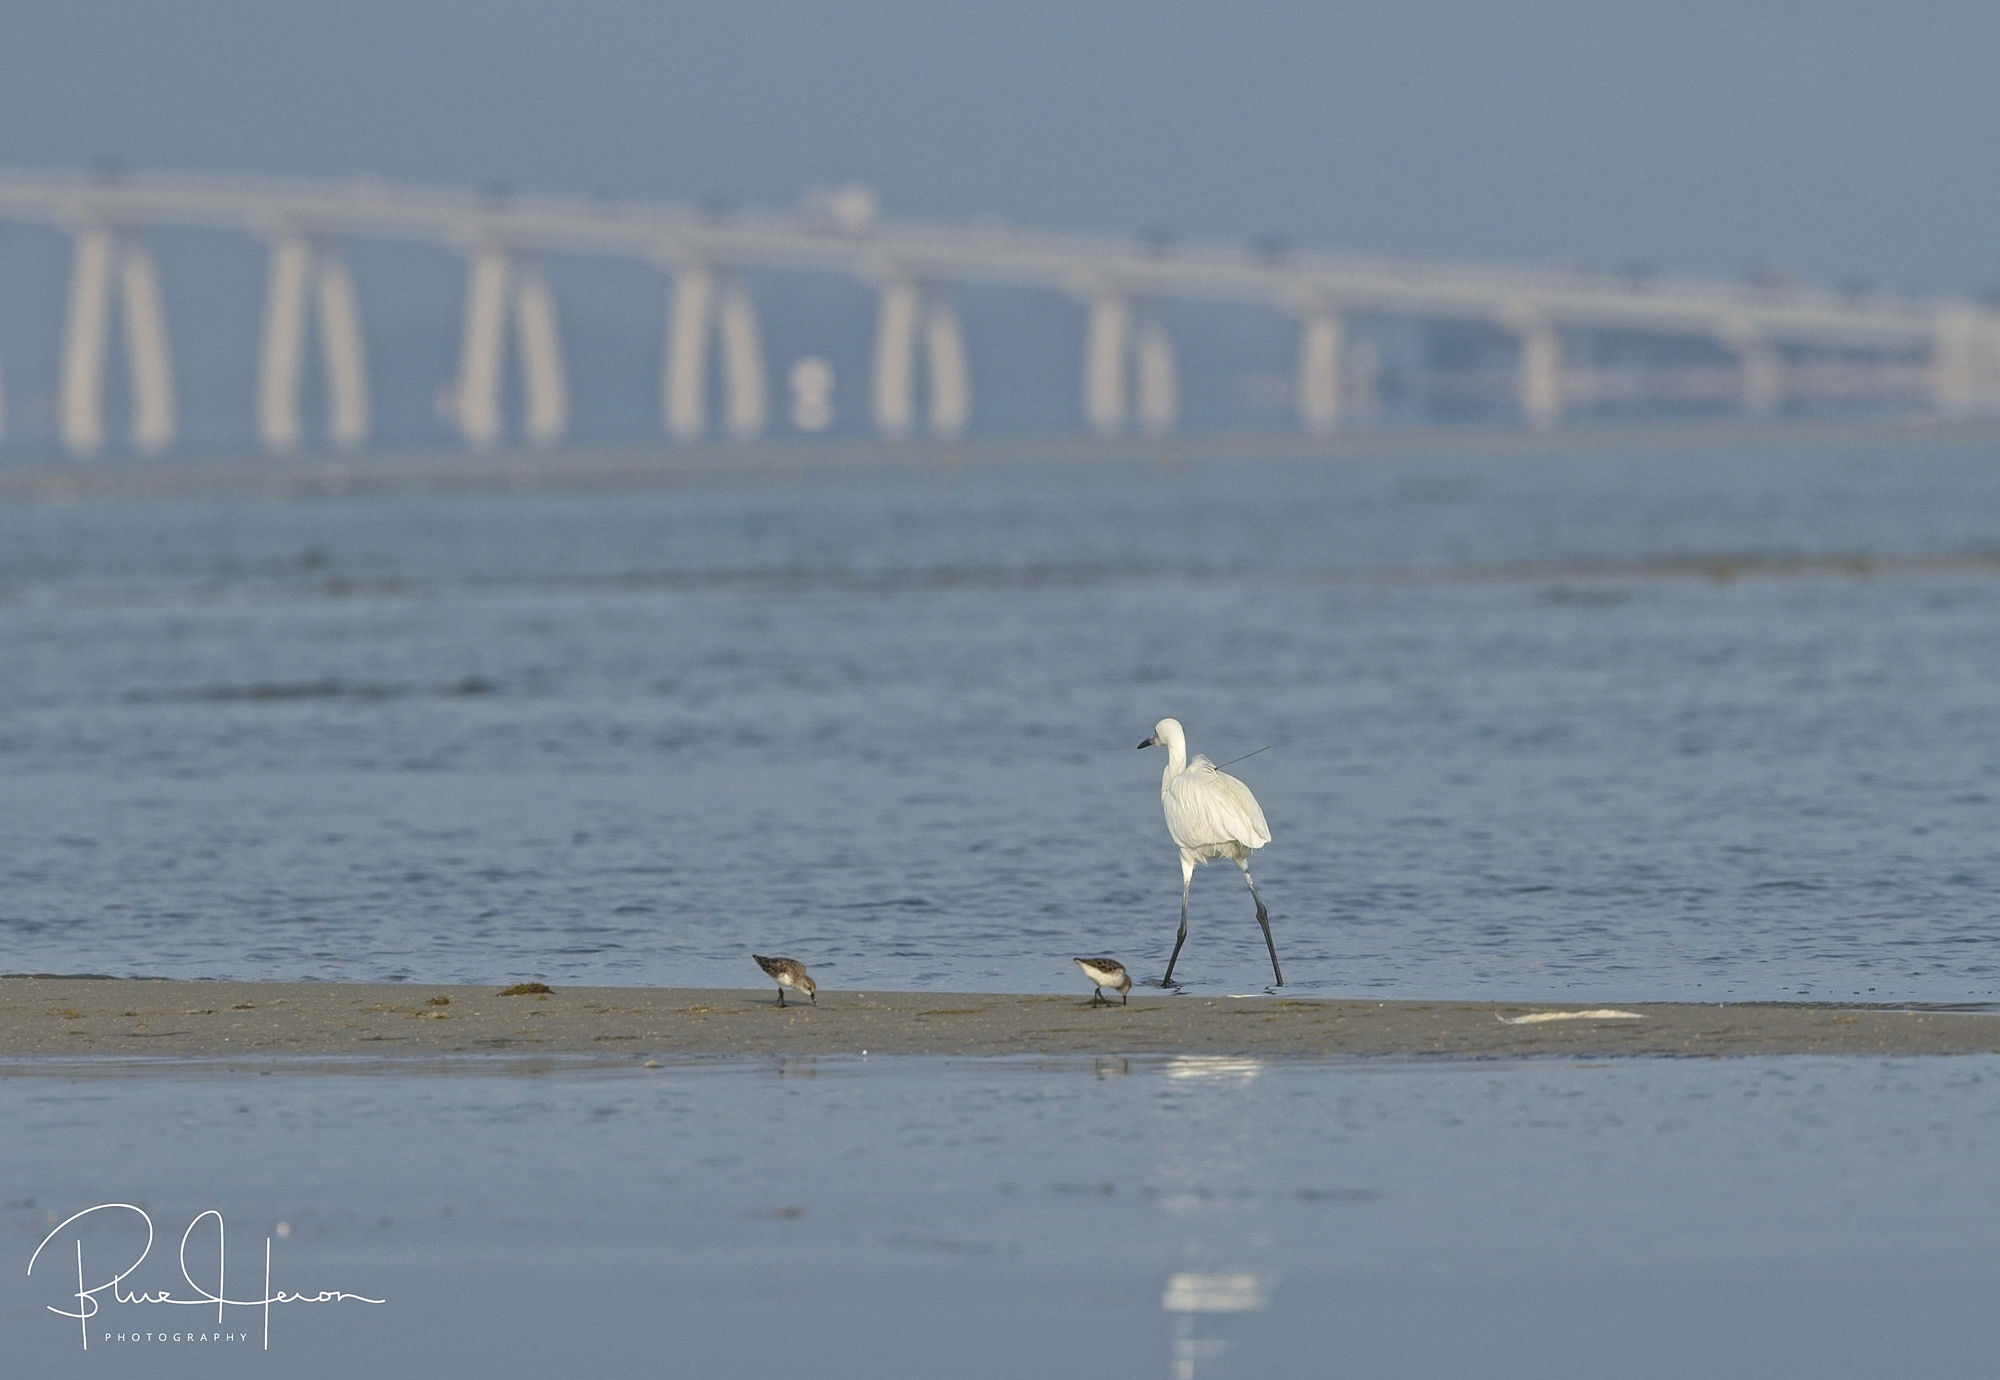 Maxis spots a White Morph Reddish Egret, it flies off and the quest is on to capture a photo